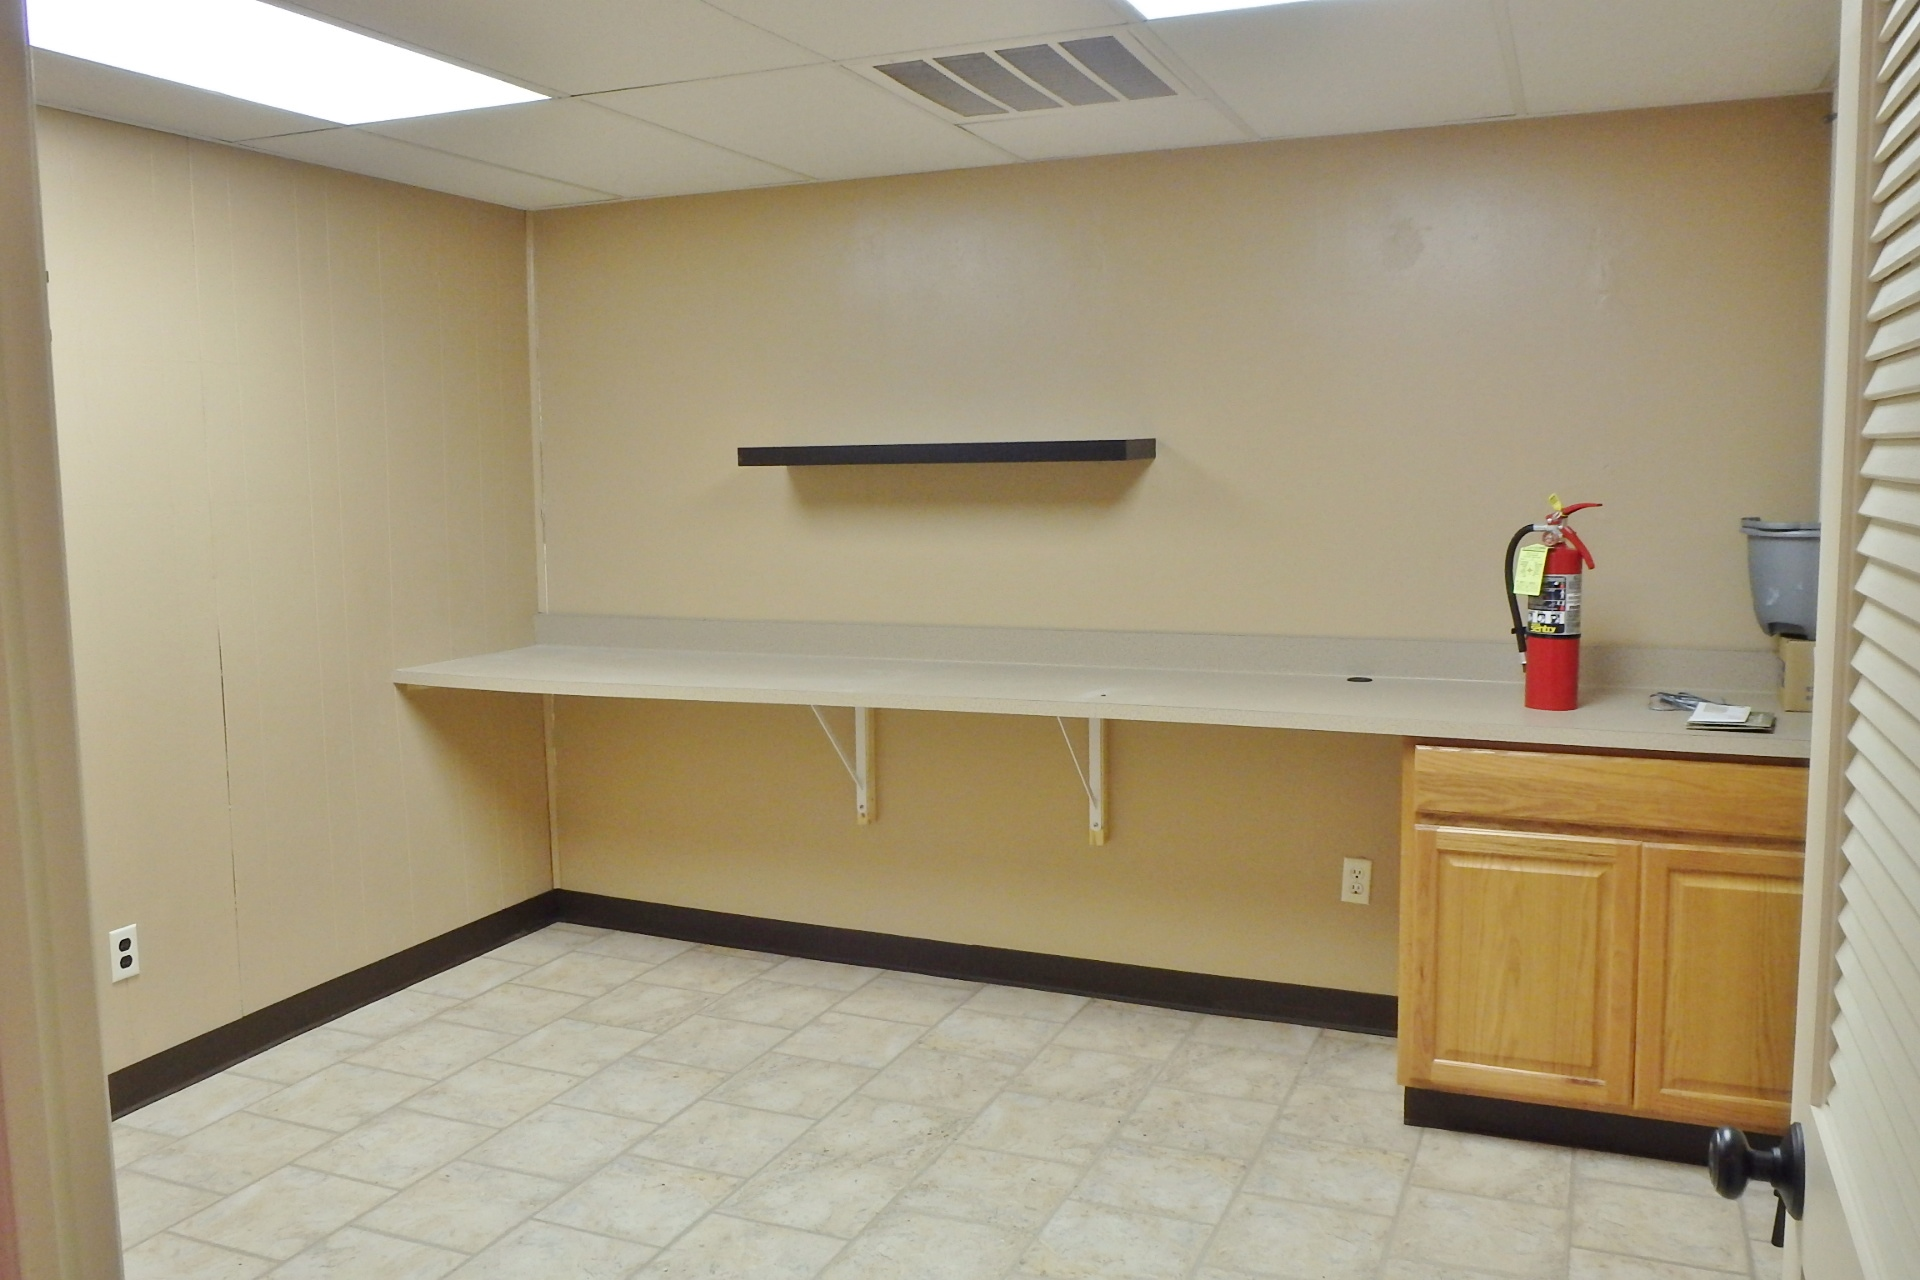 Office-Breakroom of 210 W. High Street in Bellefonte, PA